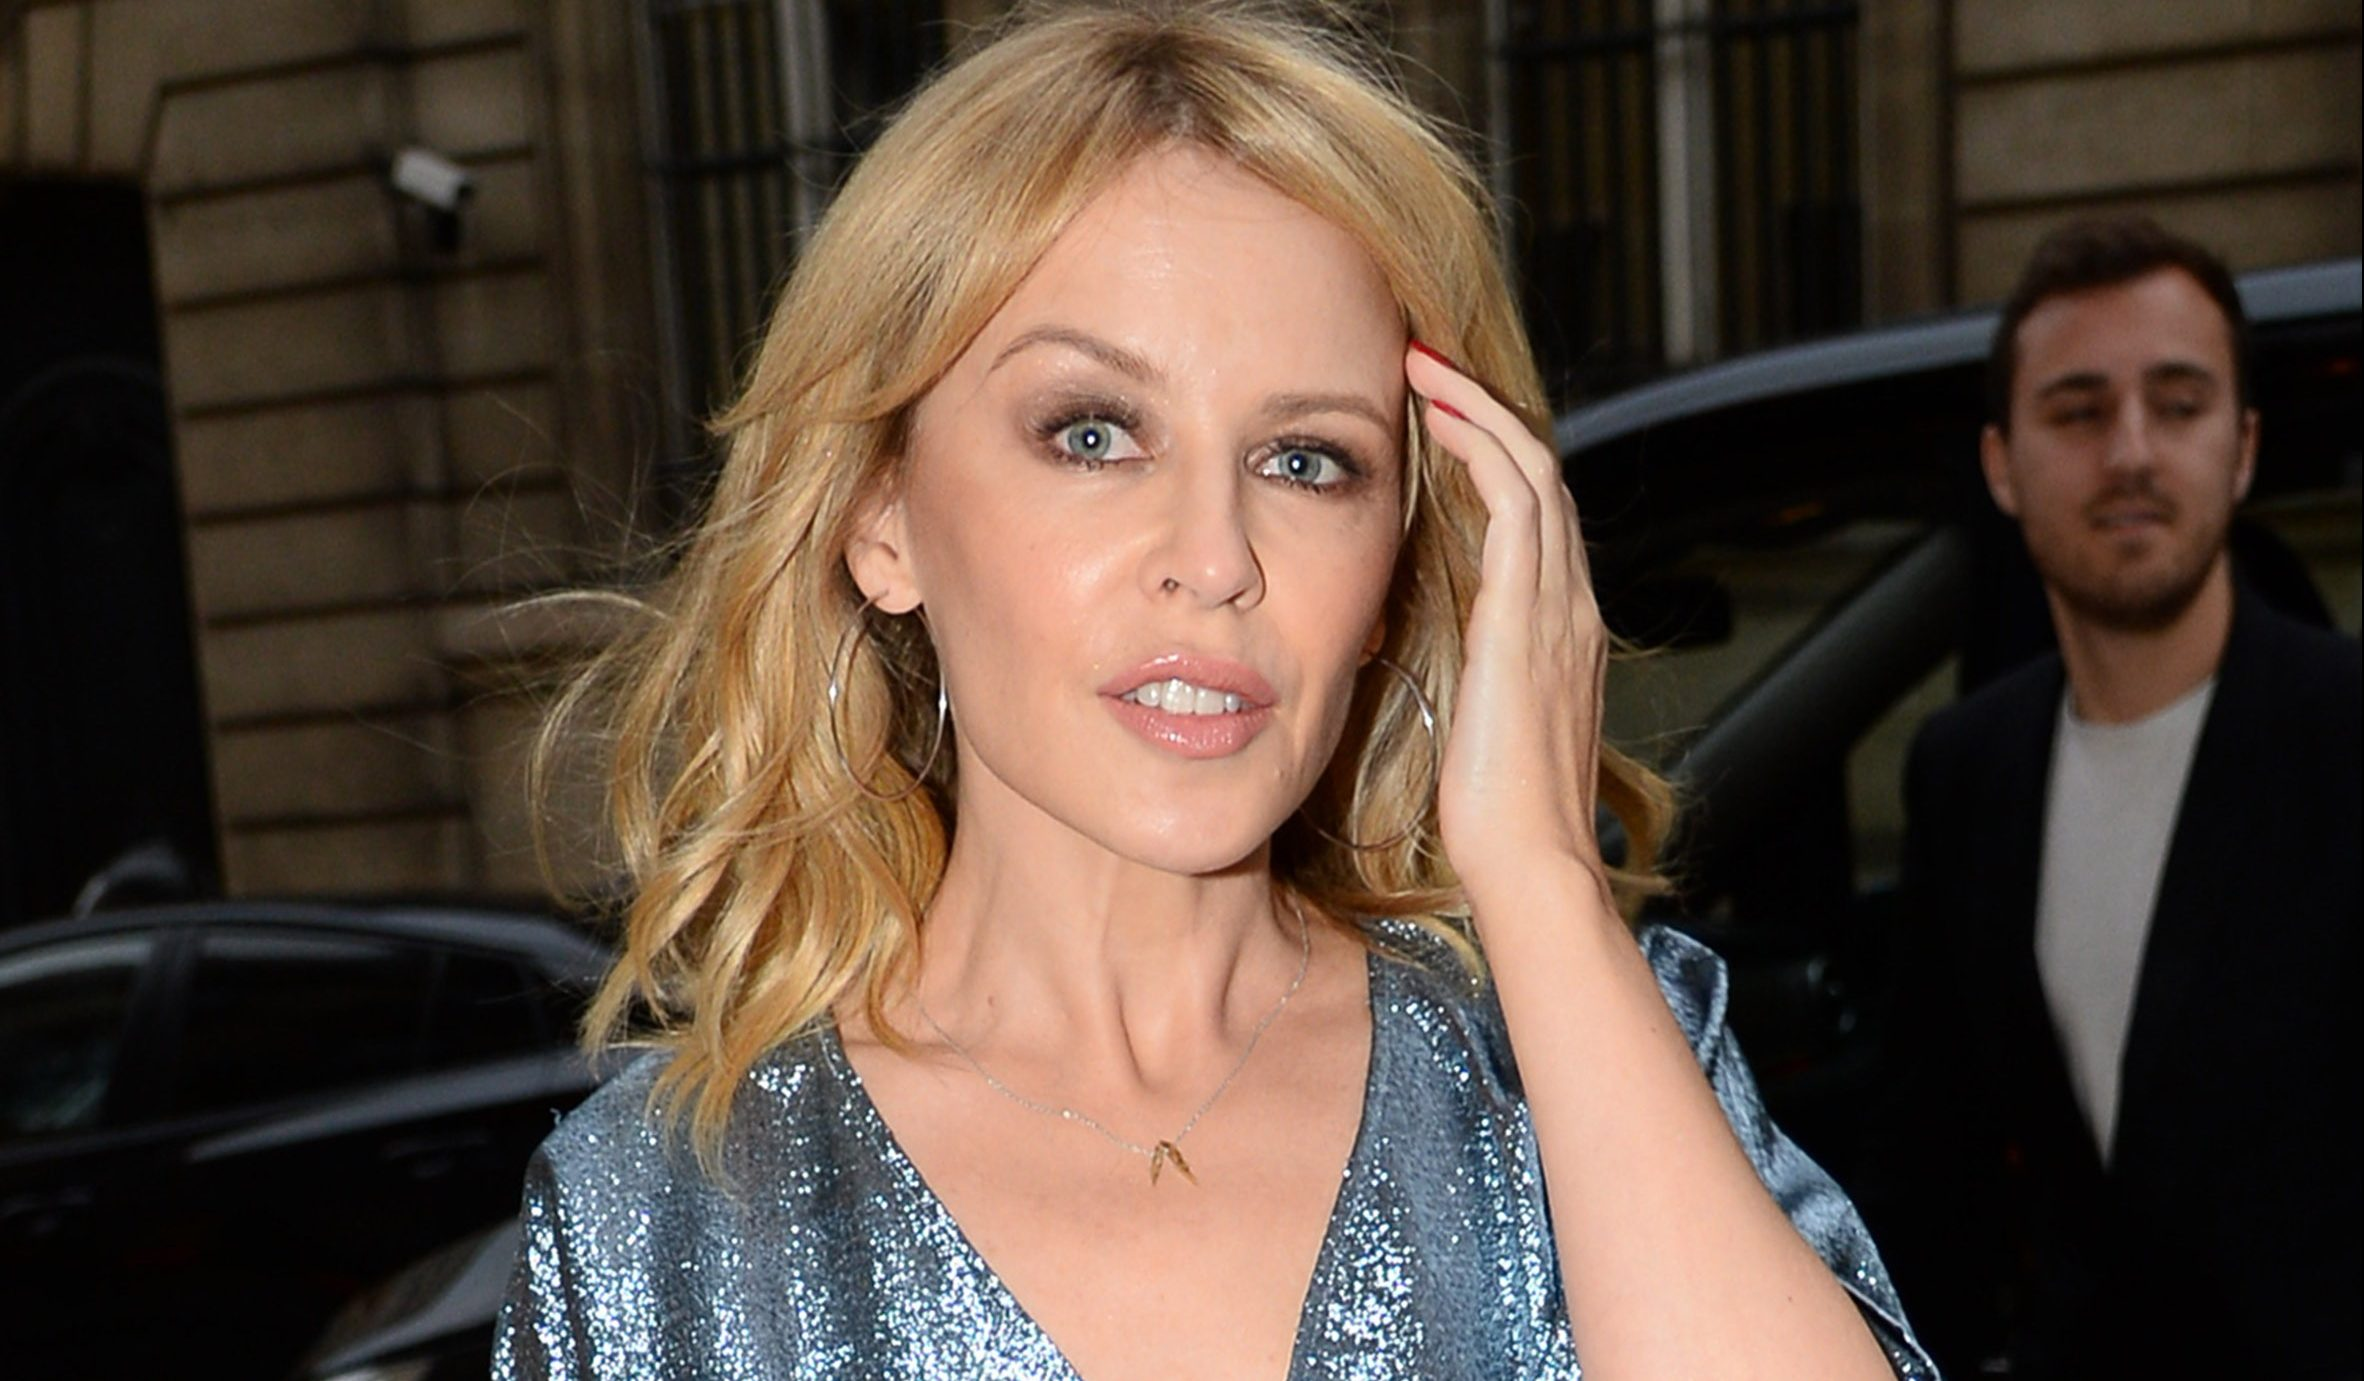 Kylie Minogue talks about 'nervous breakdown' after split from Joshua Sasse